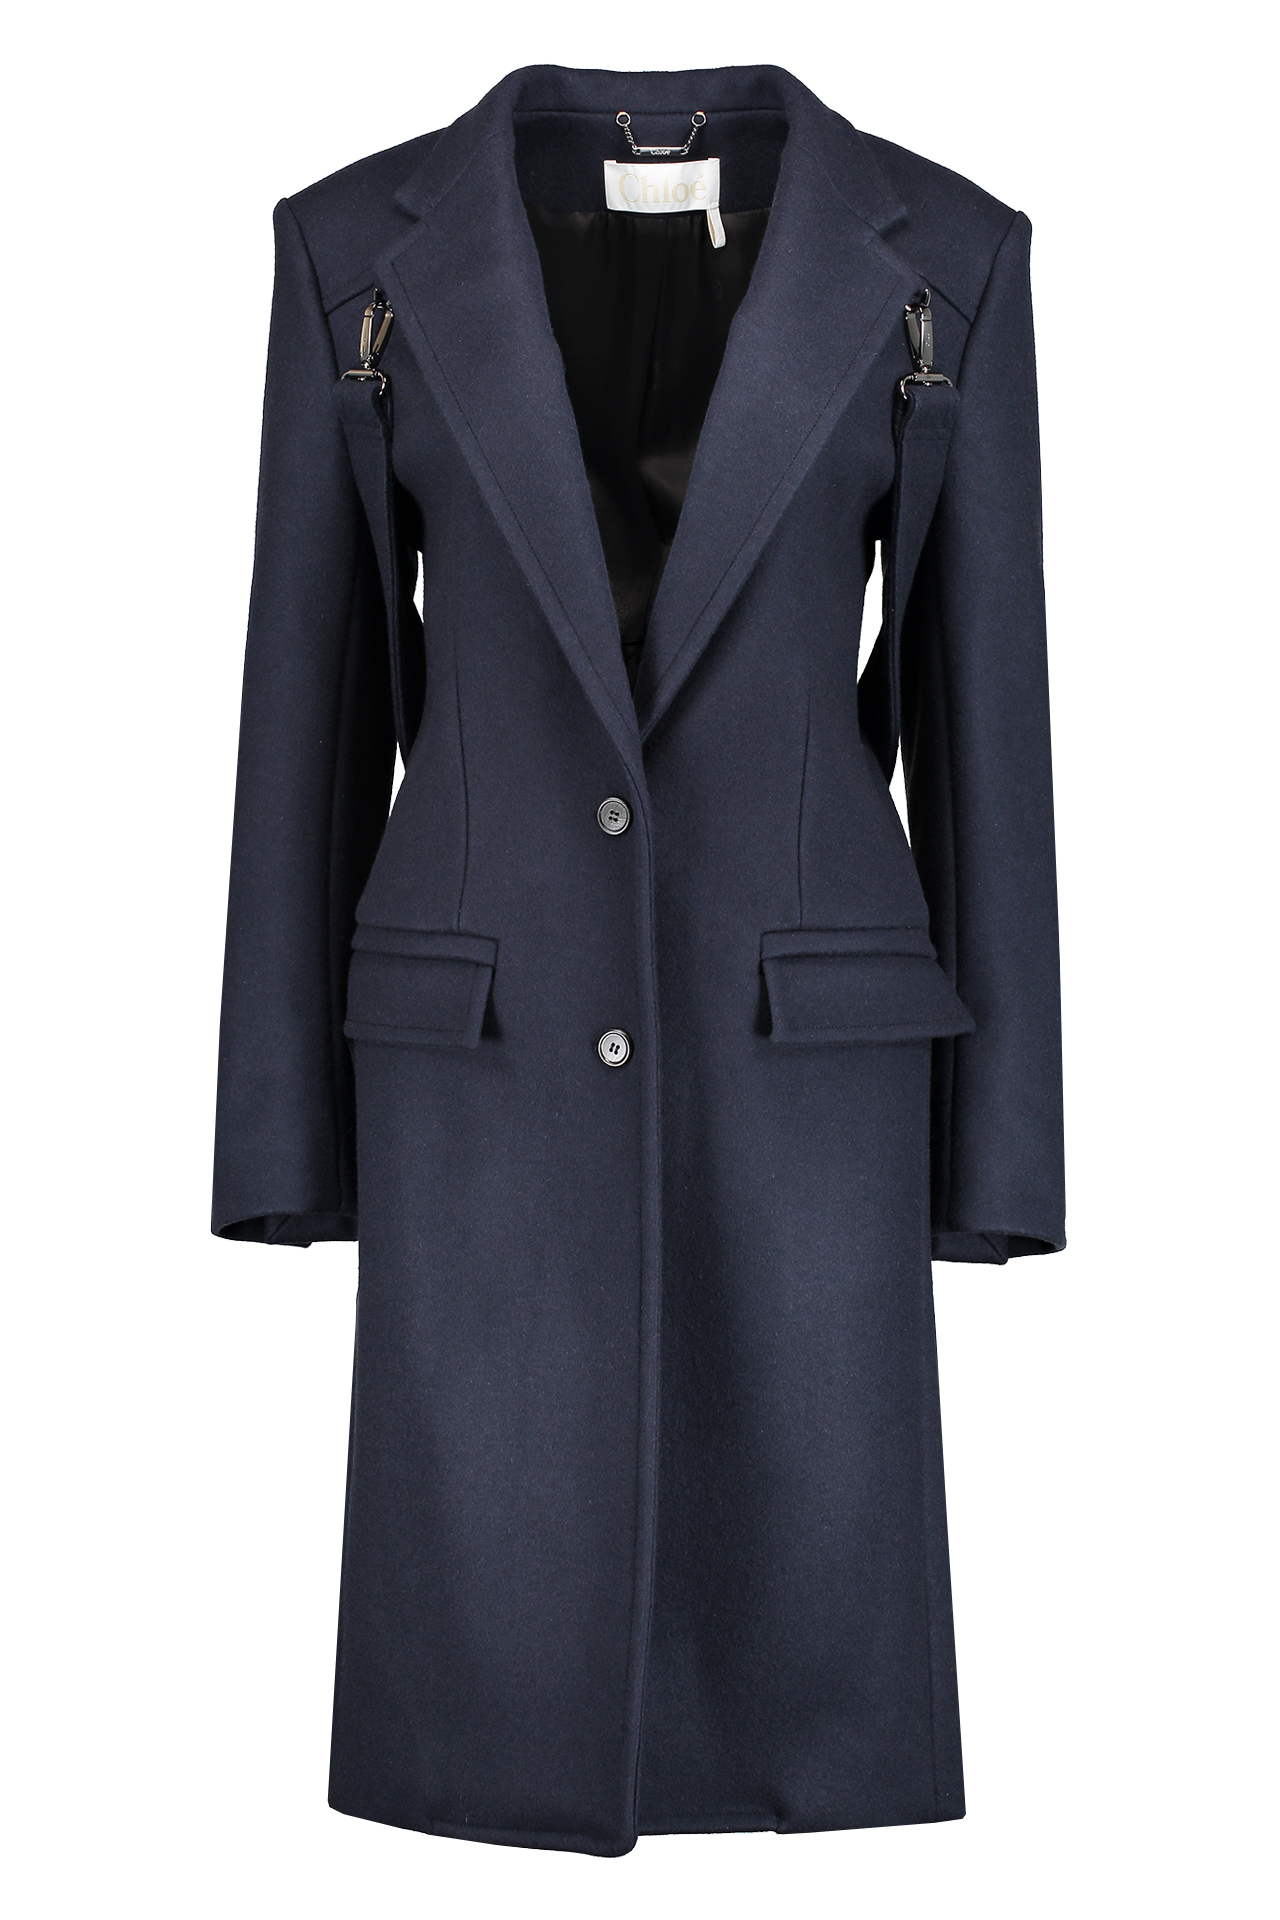 Trench Coat In Iconic Navy